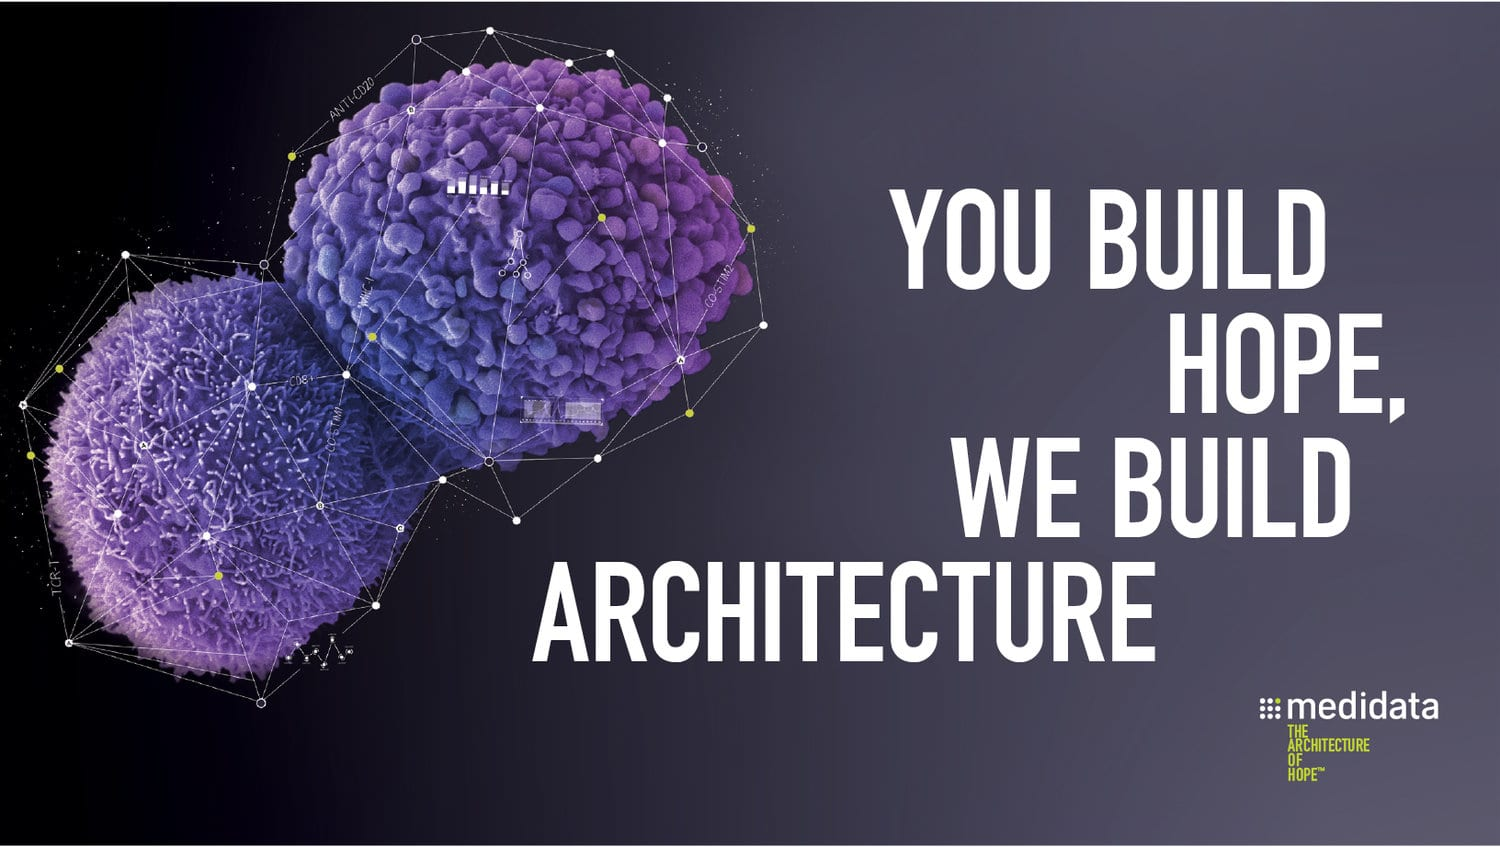 The Architecture of Hope (Medidata)